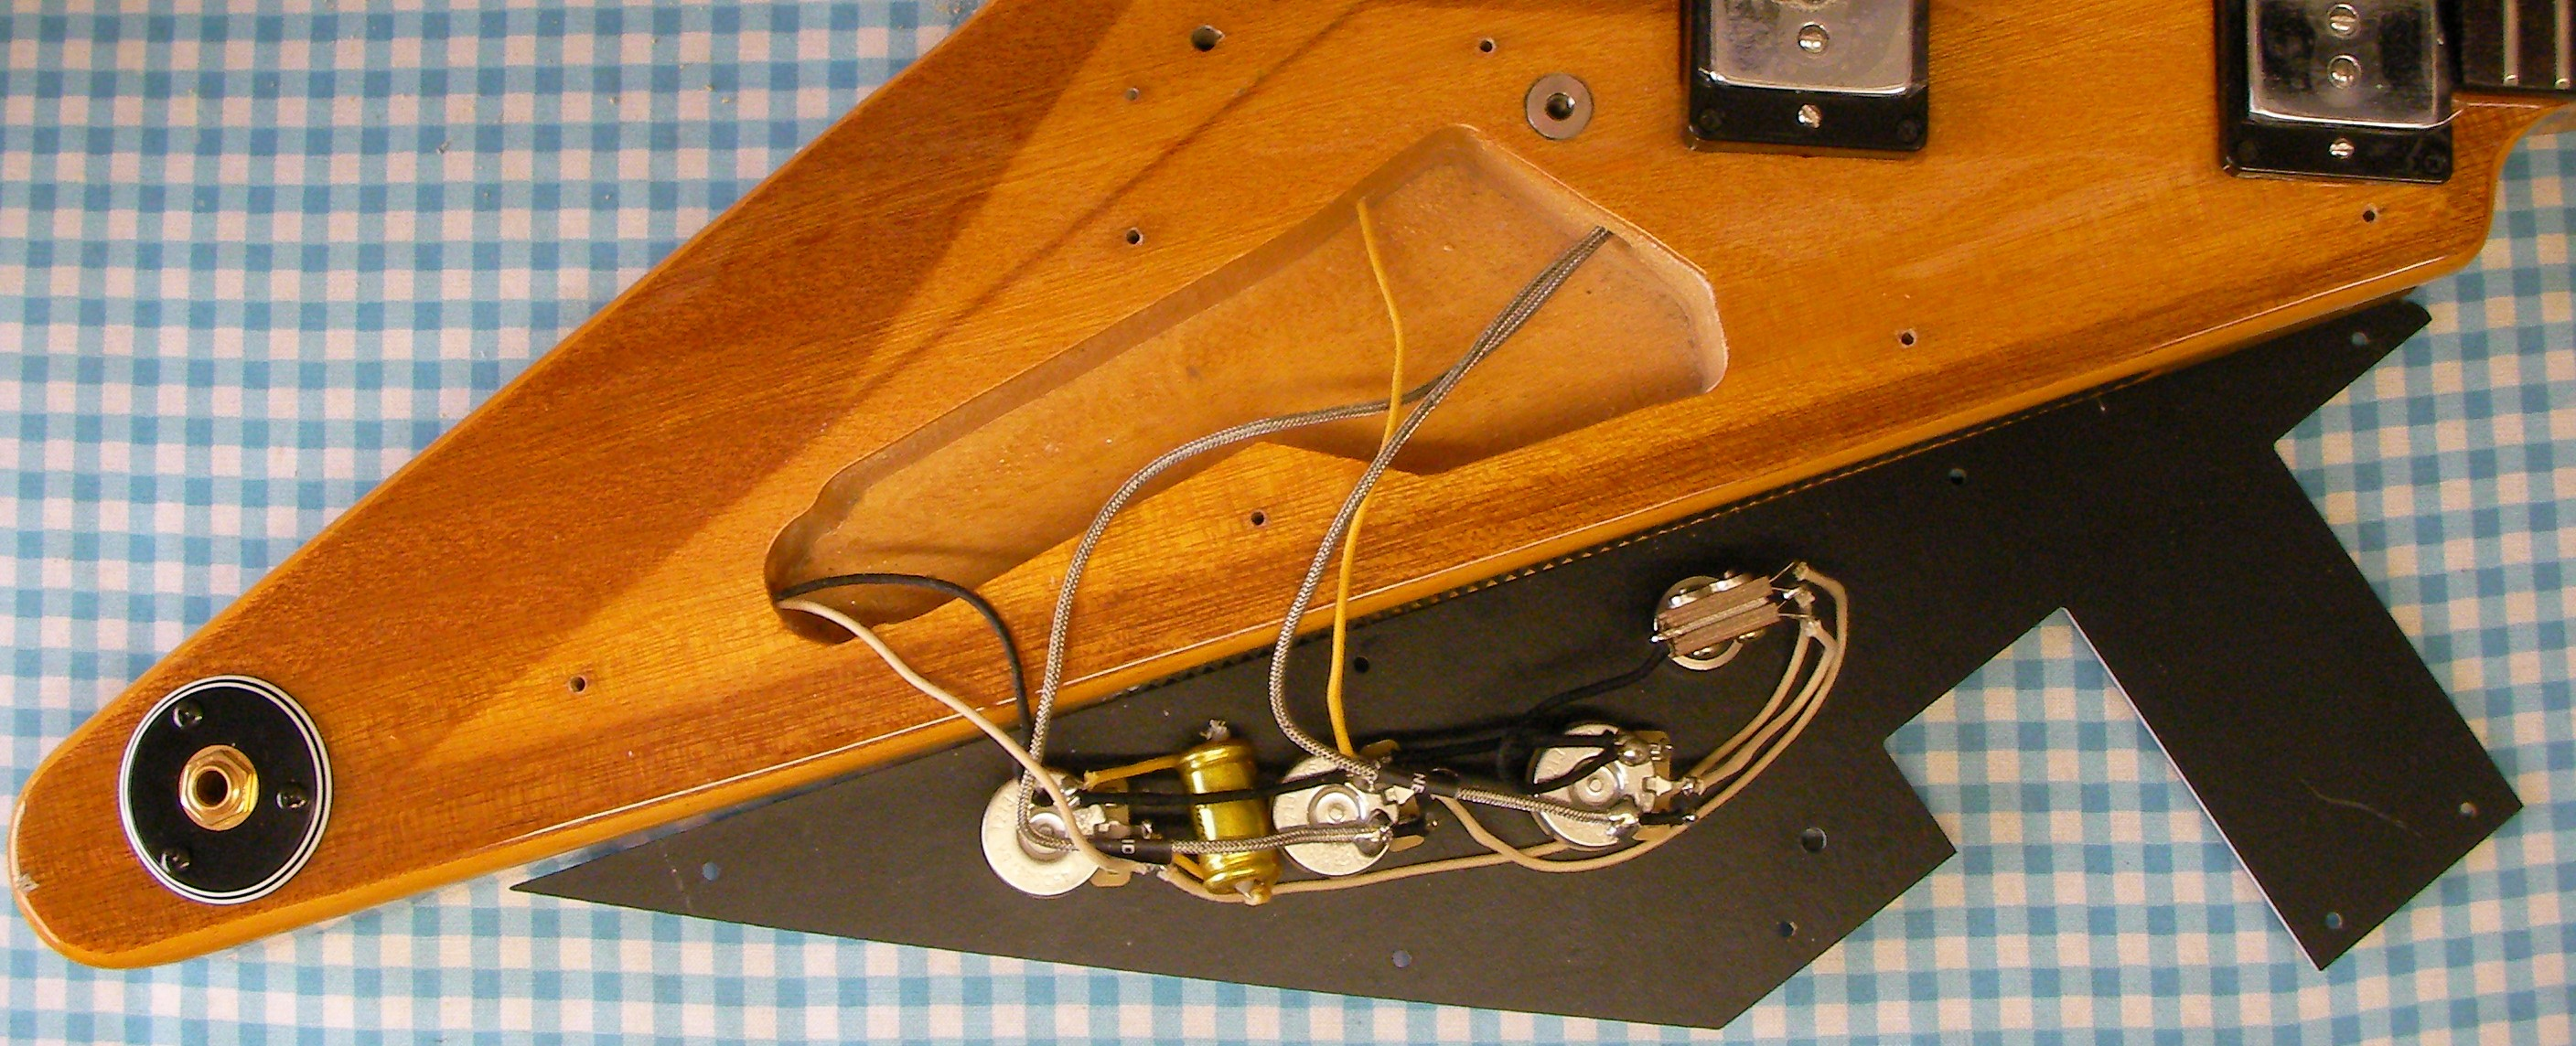 Epiphone Les Paul Switch Wiring Diagram Furthermore Epiphone Les Paul